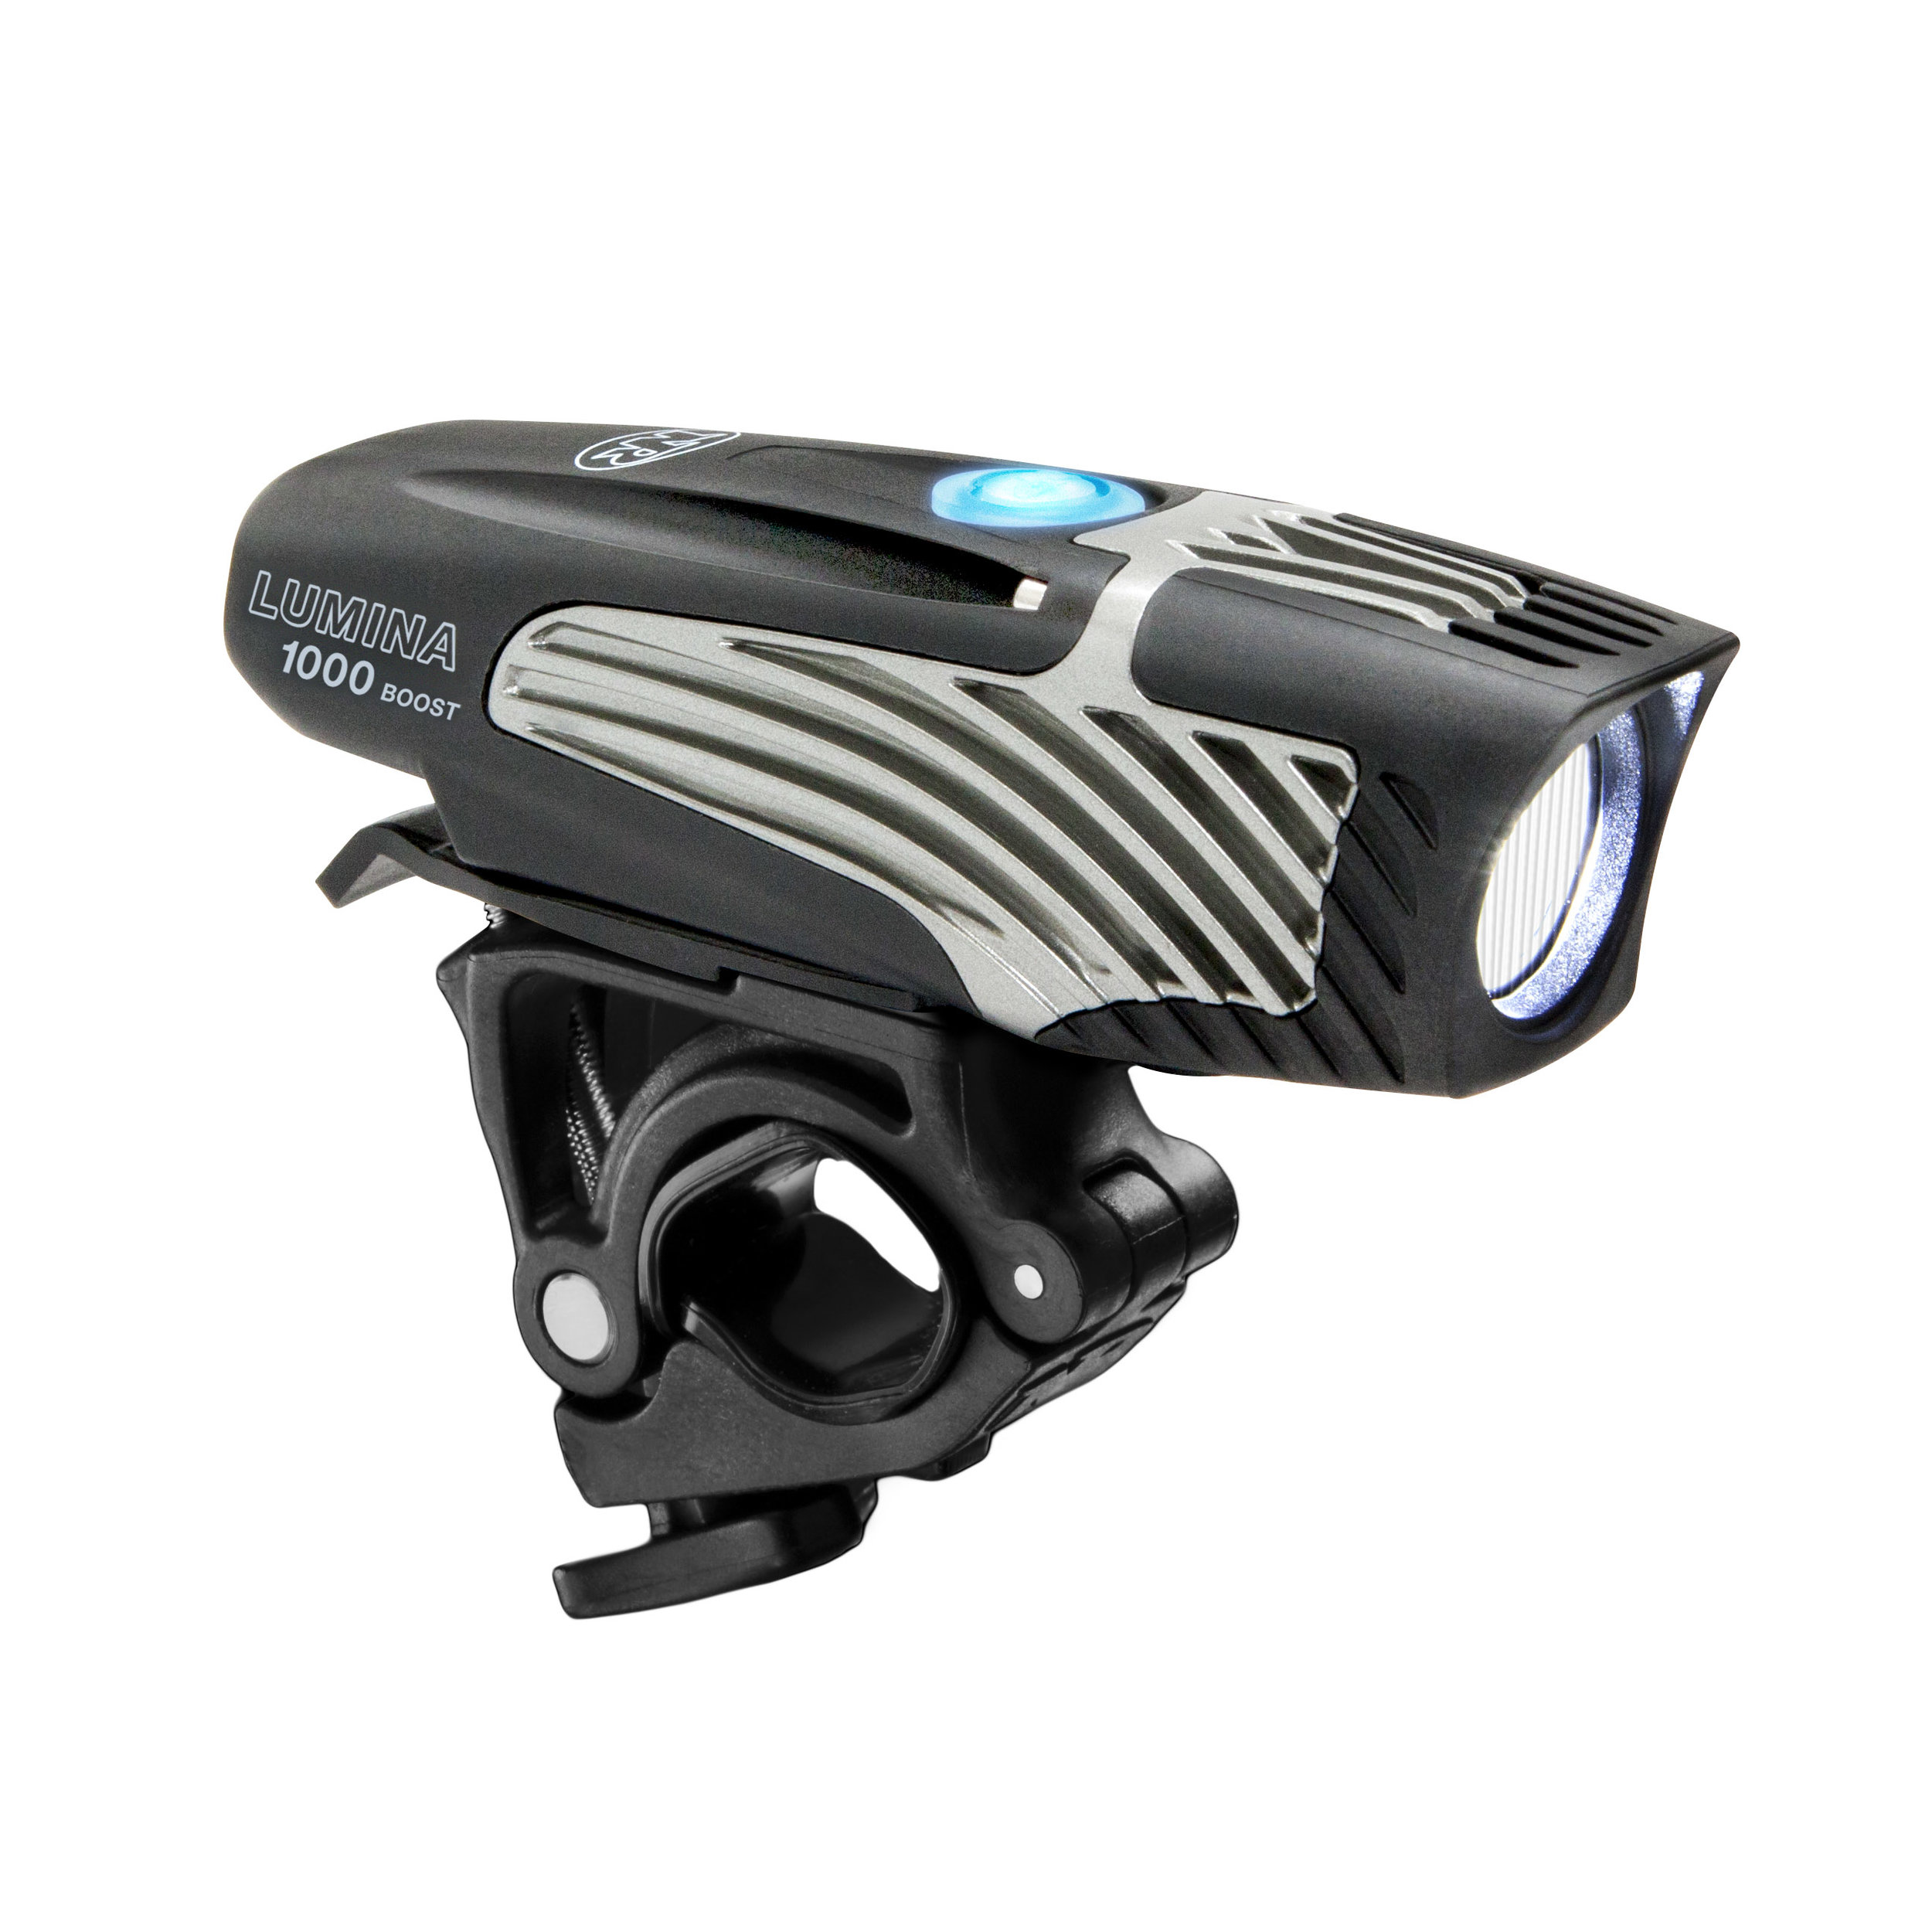 Lumina 1000 Boost - SGD $95 | Specifications: Here